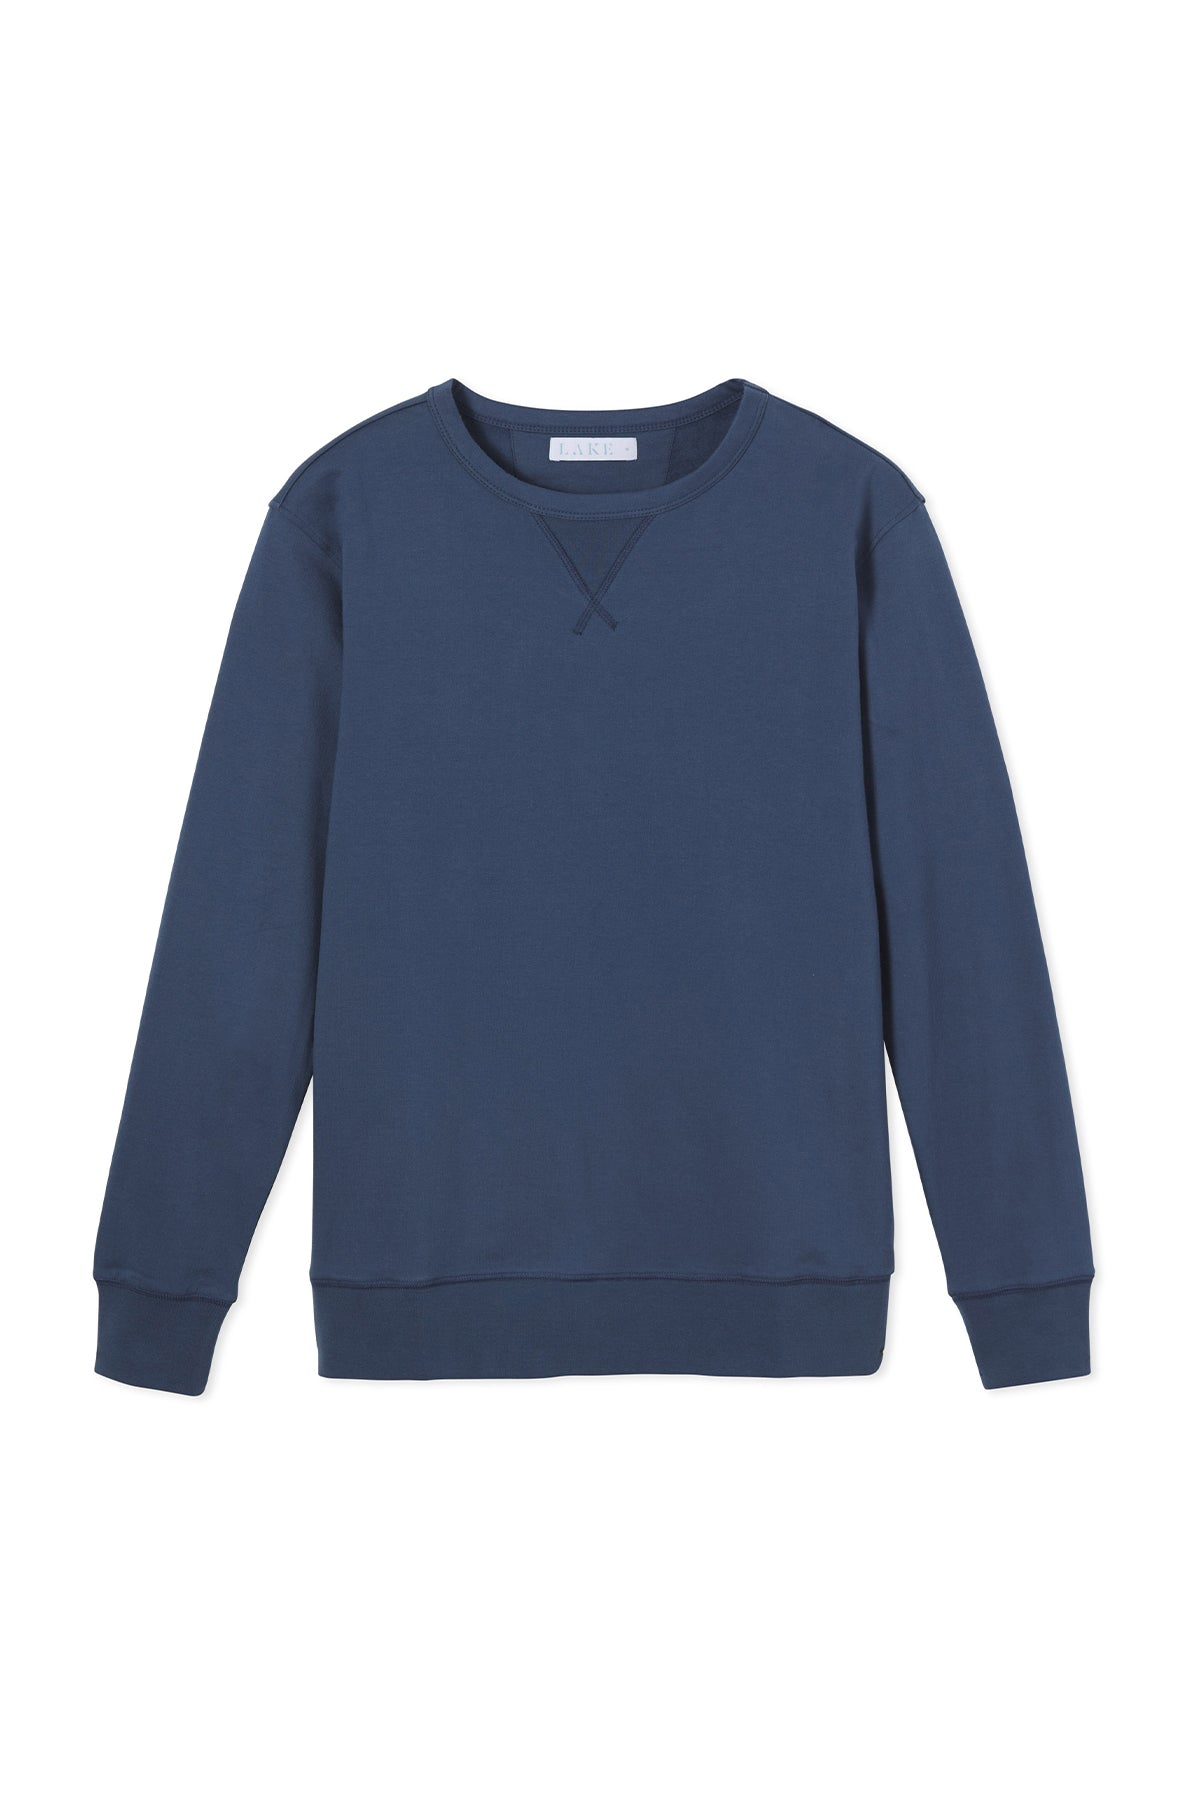 Men's Sweatshirt in Navy